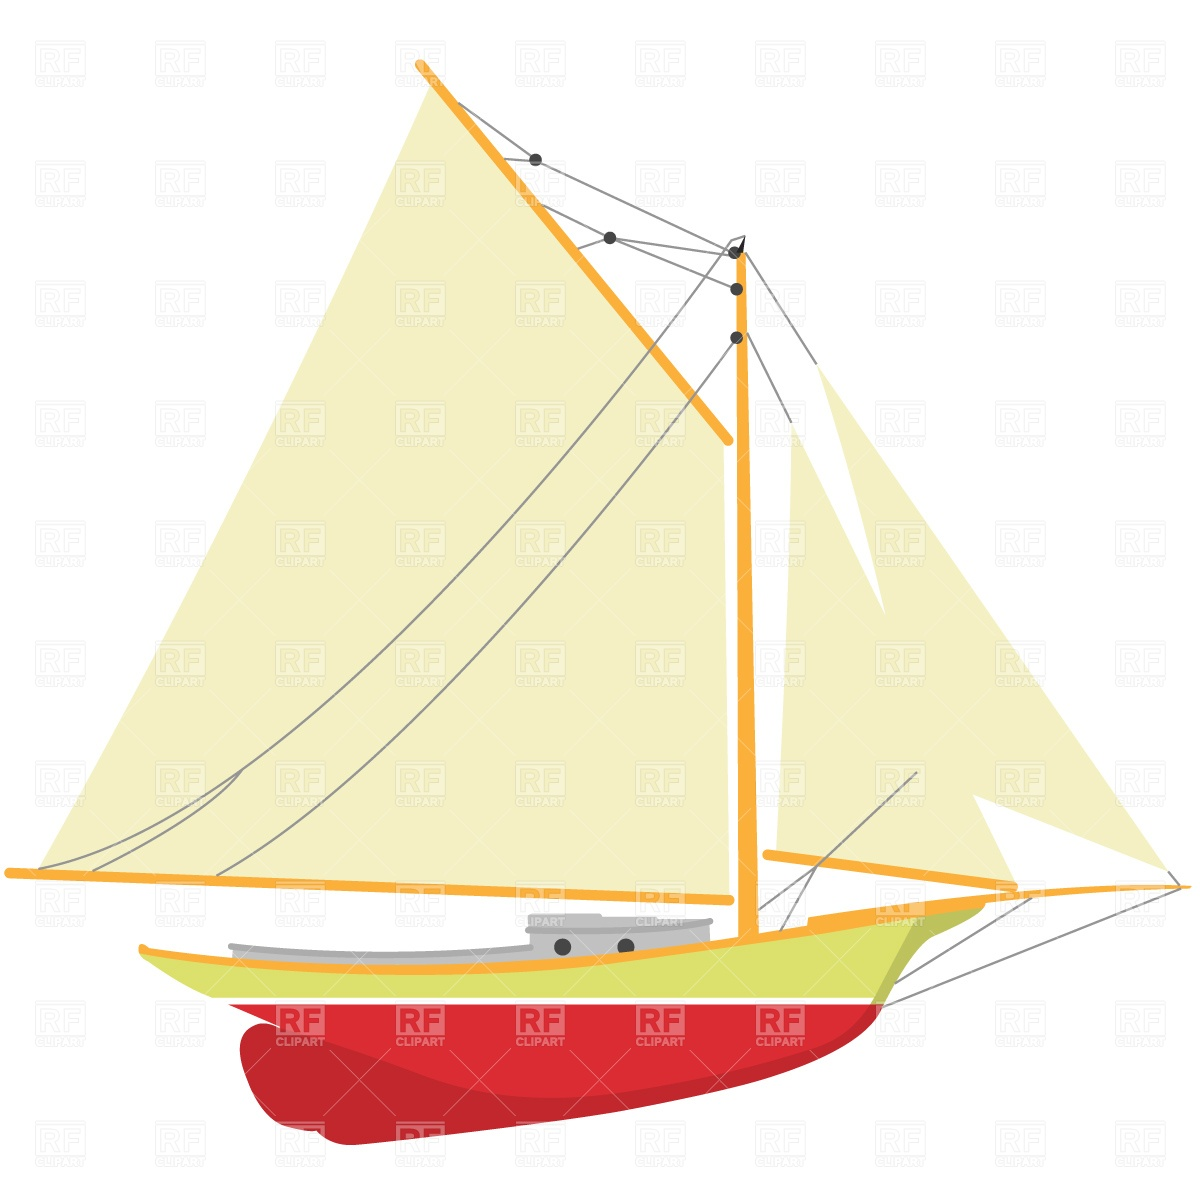 Clipart yacht free download.